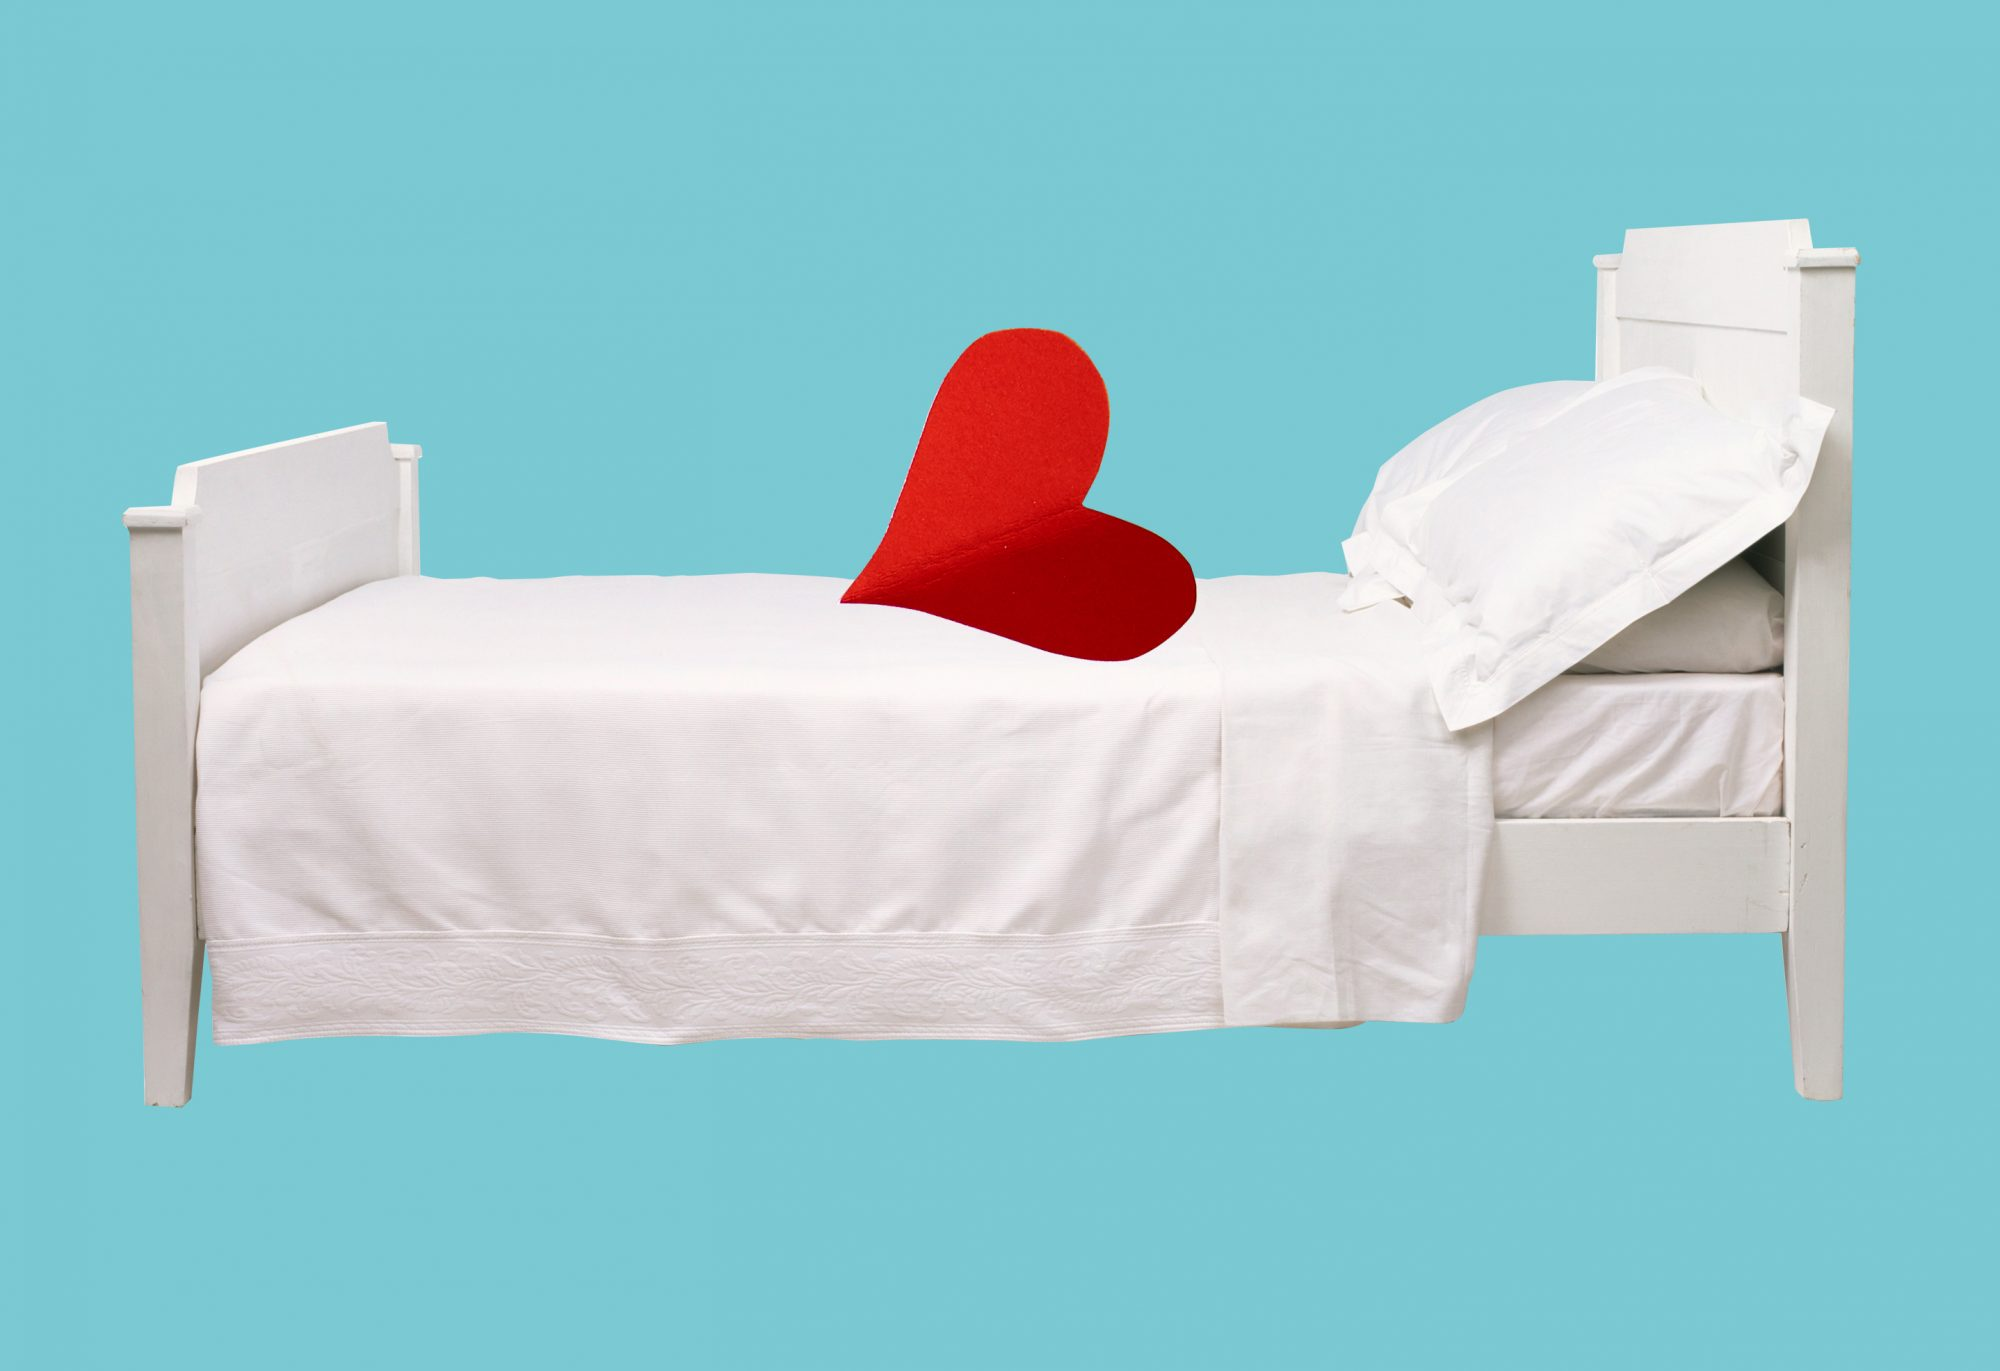 Study: Napping in Moderation Lowers Risk of Heart Disease